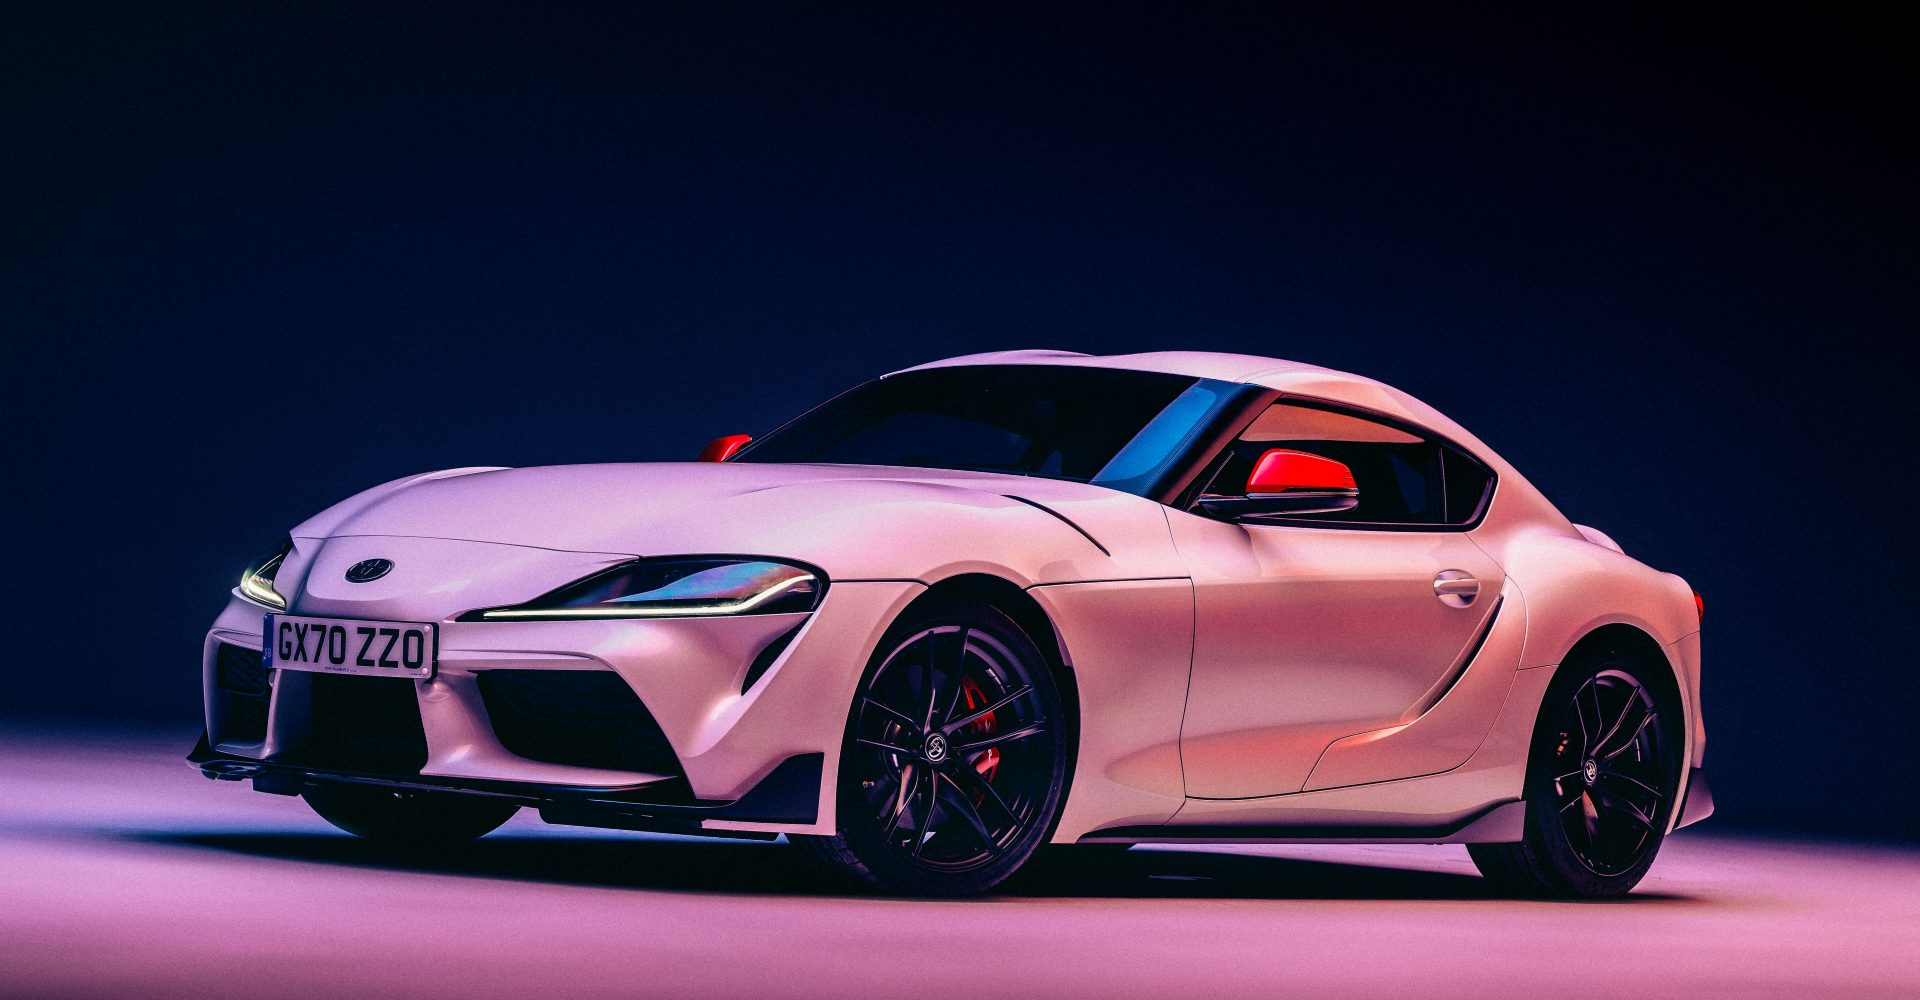 Toyota Supra with 2.0-litre engine goes on sale in the UK